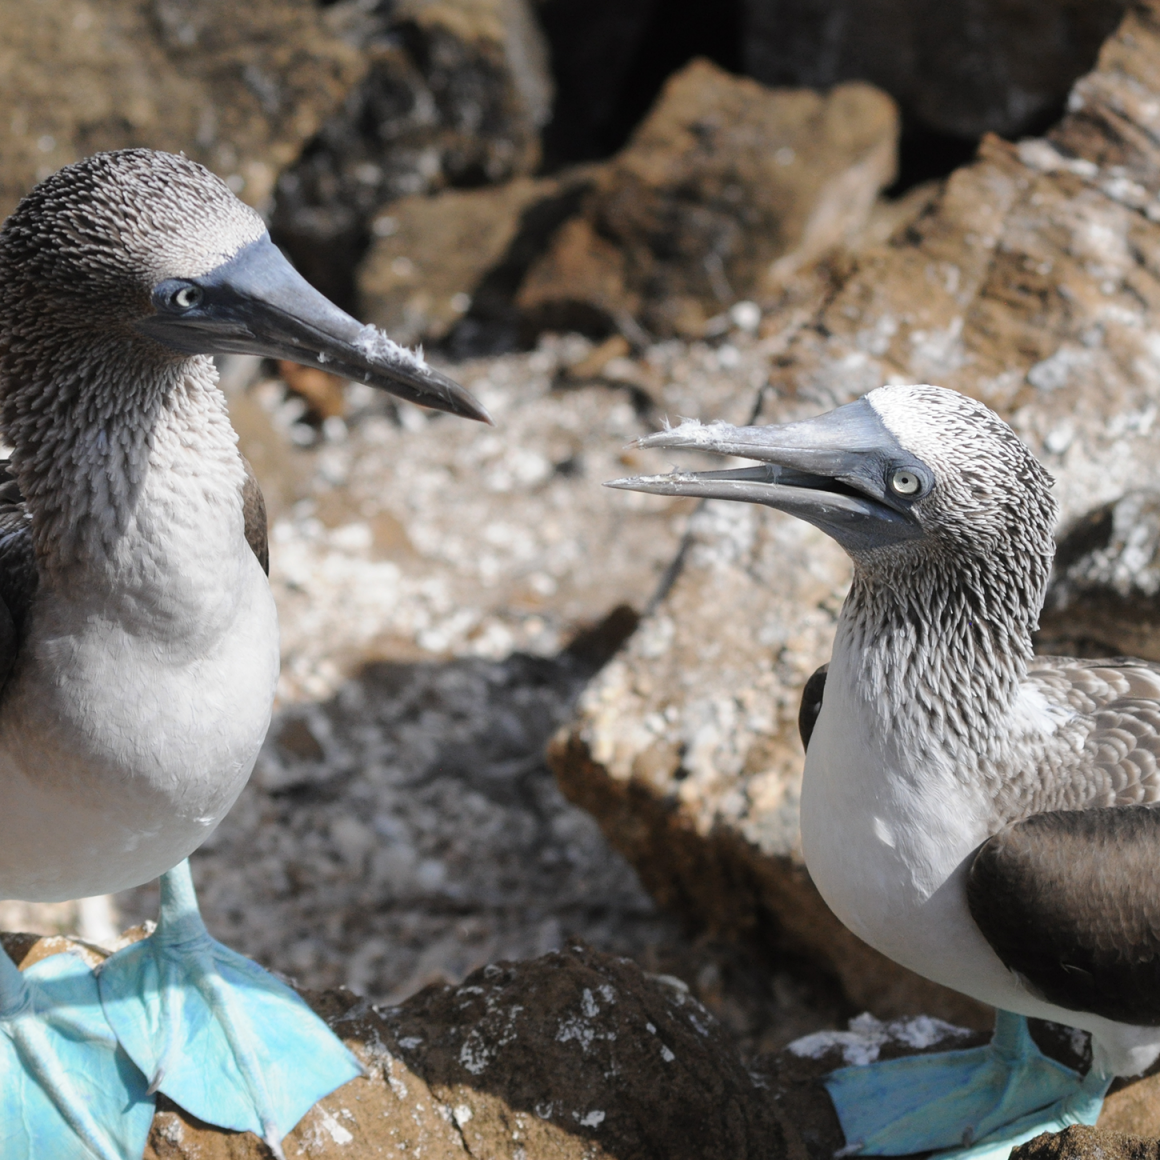 Blue-footed boobies in the Galapagos.